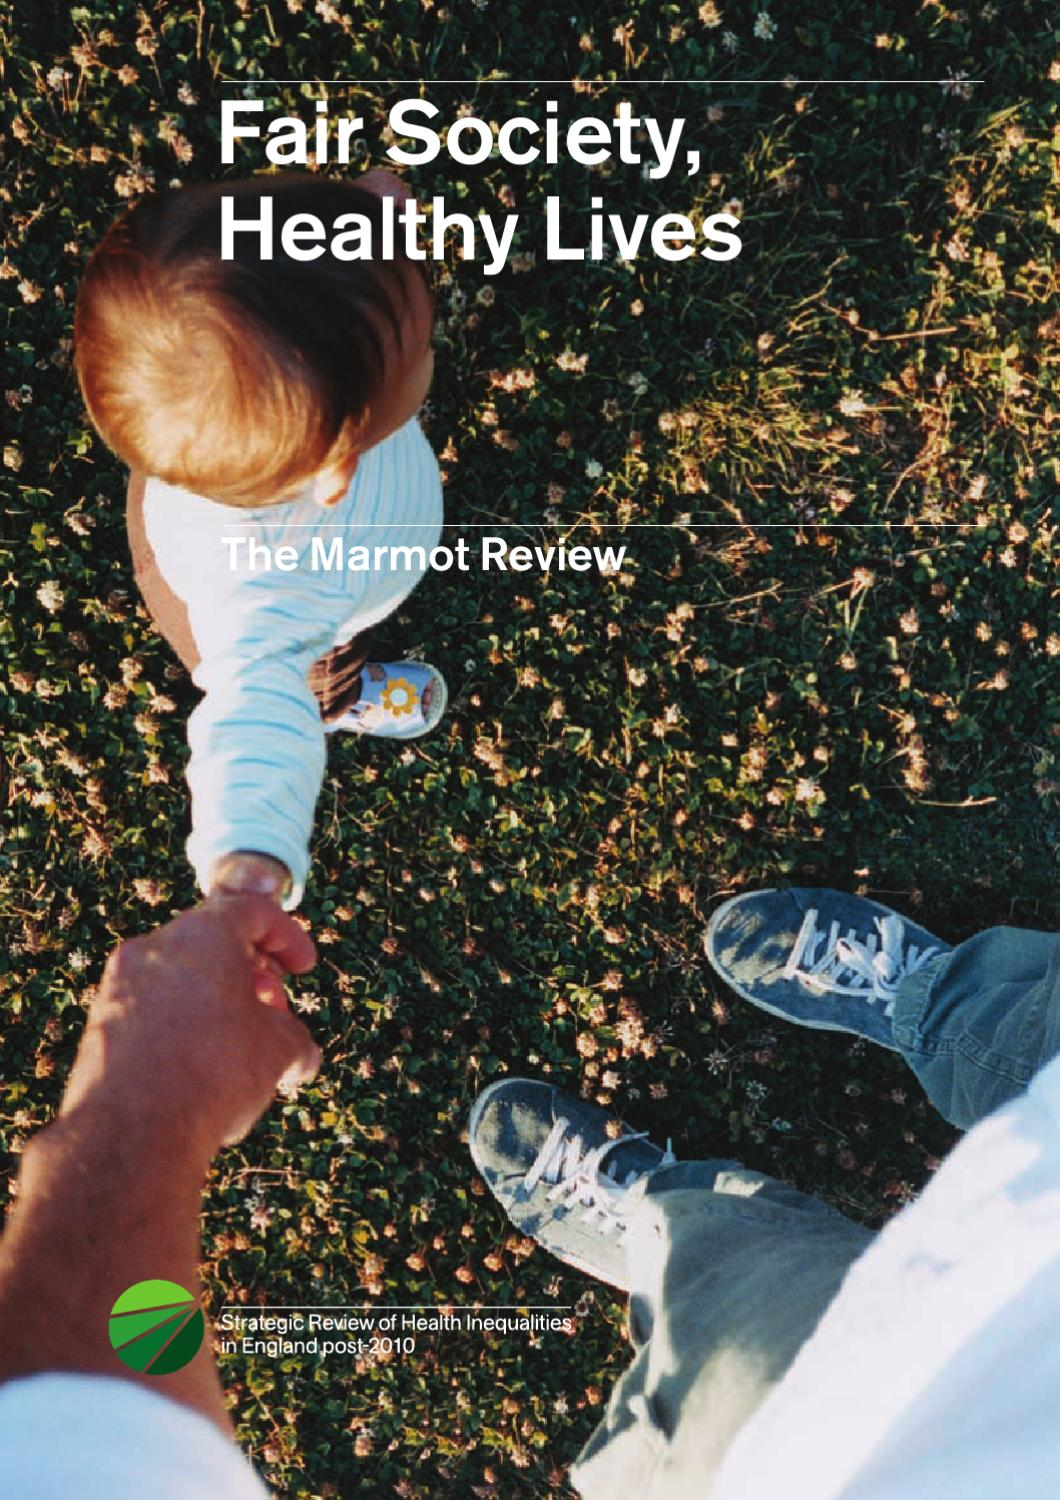 Marmot Review  Fair Society Healthy Lives by Paul